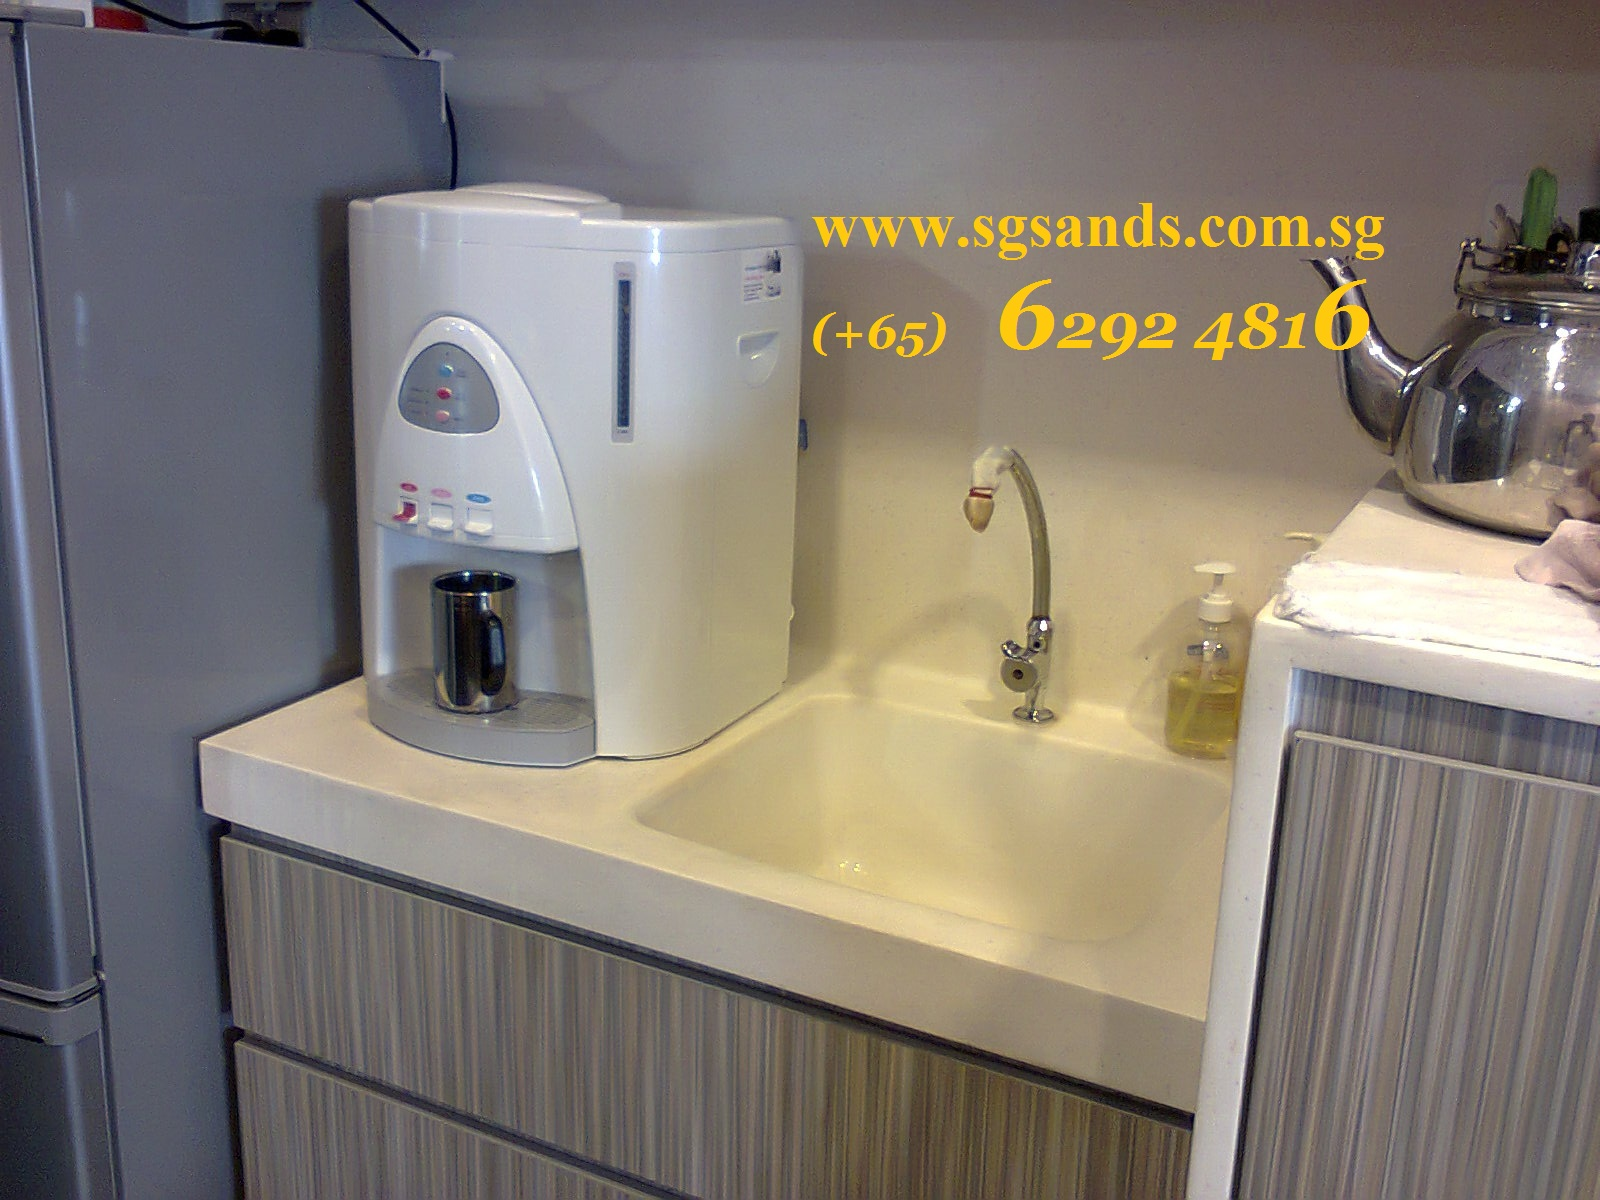 Singapore Water Dispenser Photo Gallery Sgsands Ca919